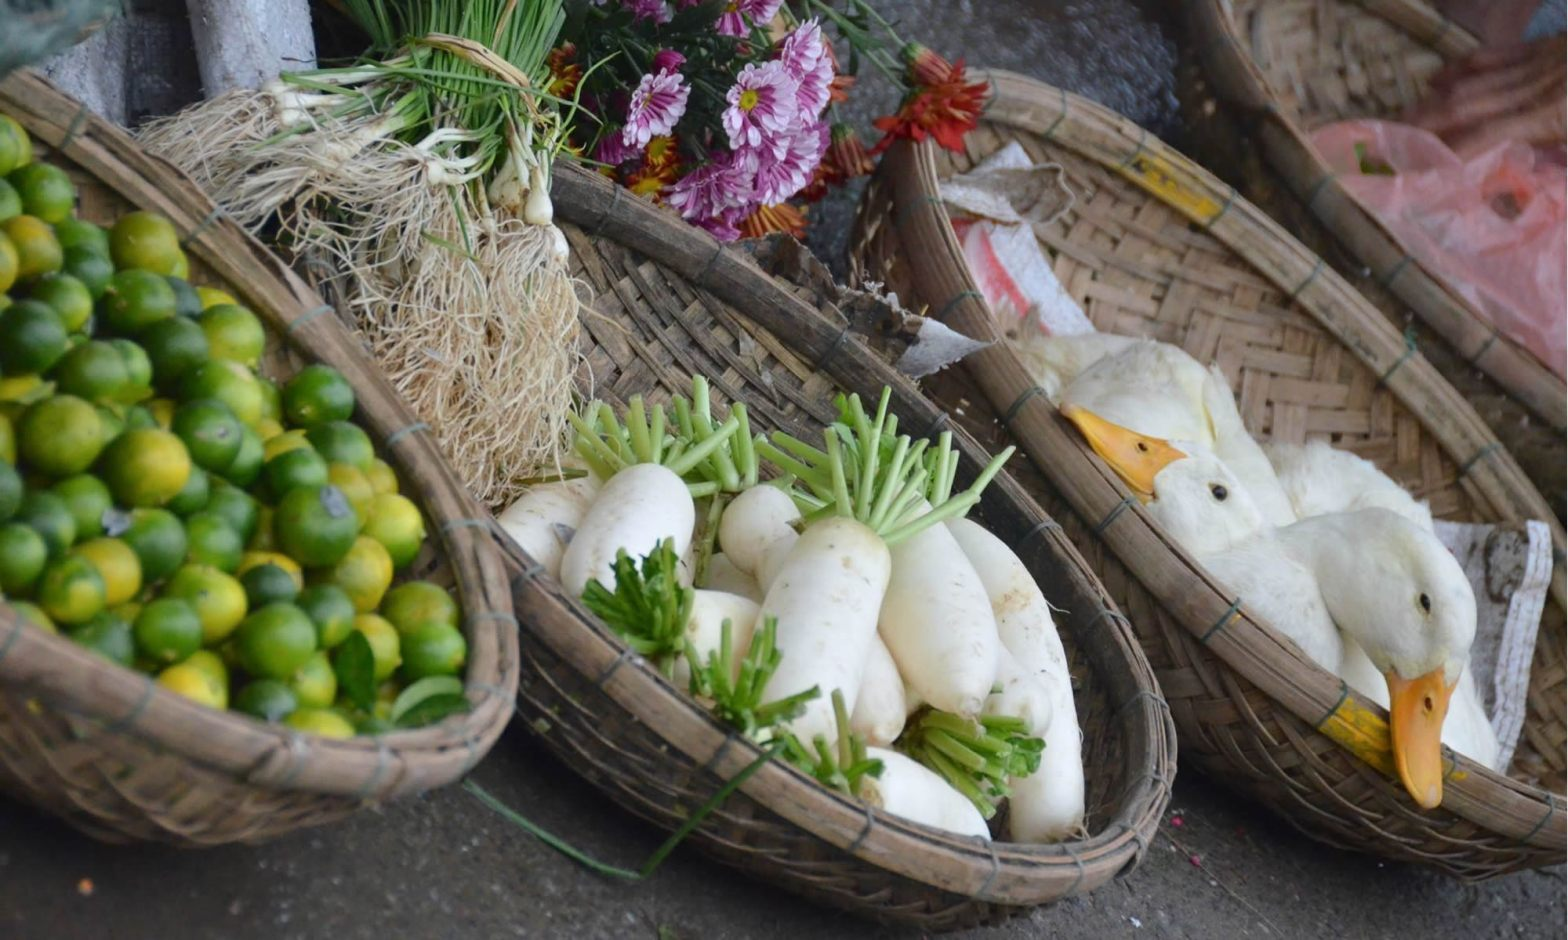 At the outdoor market in Hoi An, Vietnam, baskets of fresh fruit (limes), vegetables (turnips), flowers, and live ducks sit on the pavement.